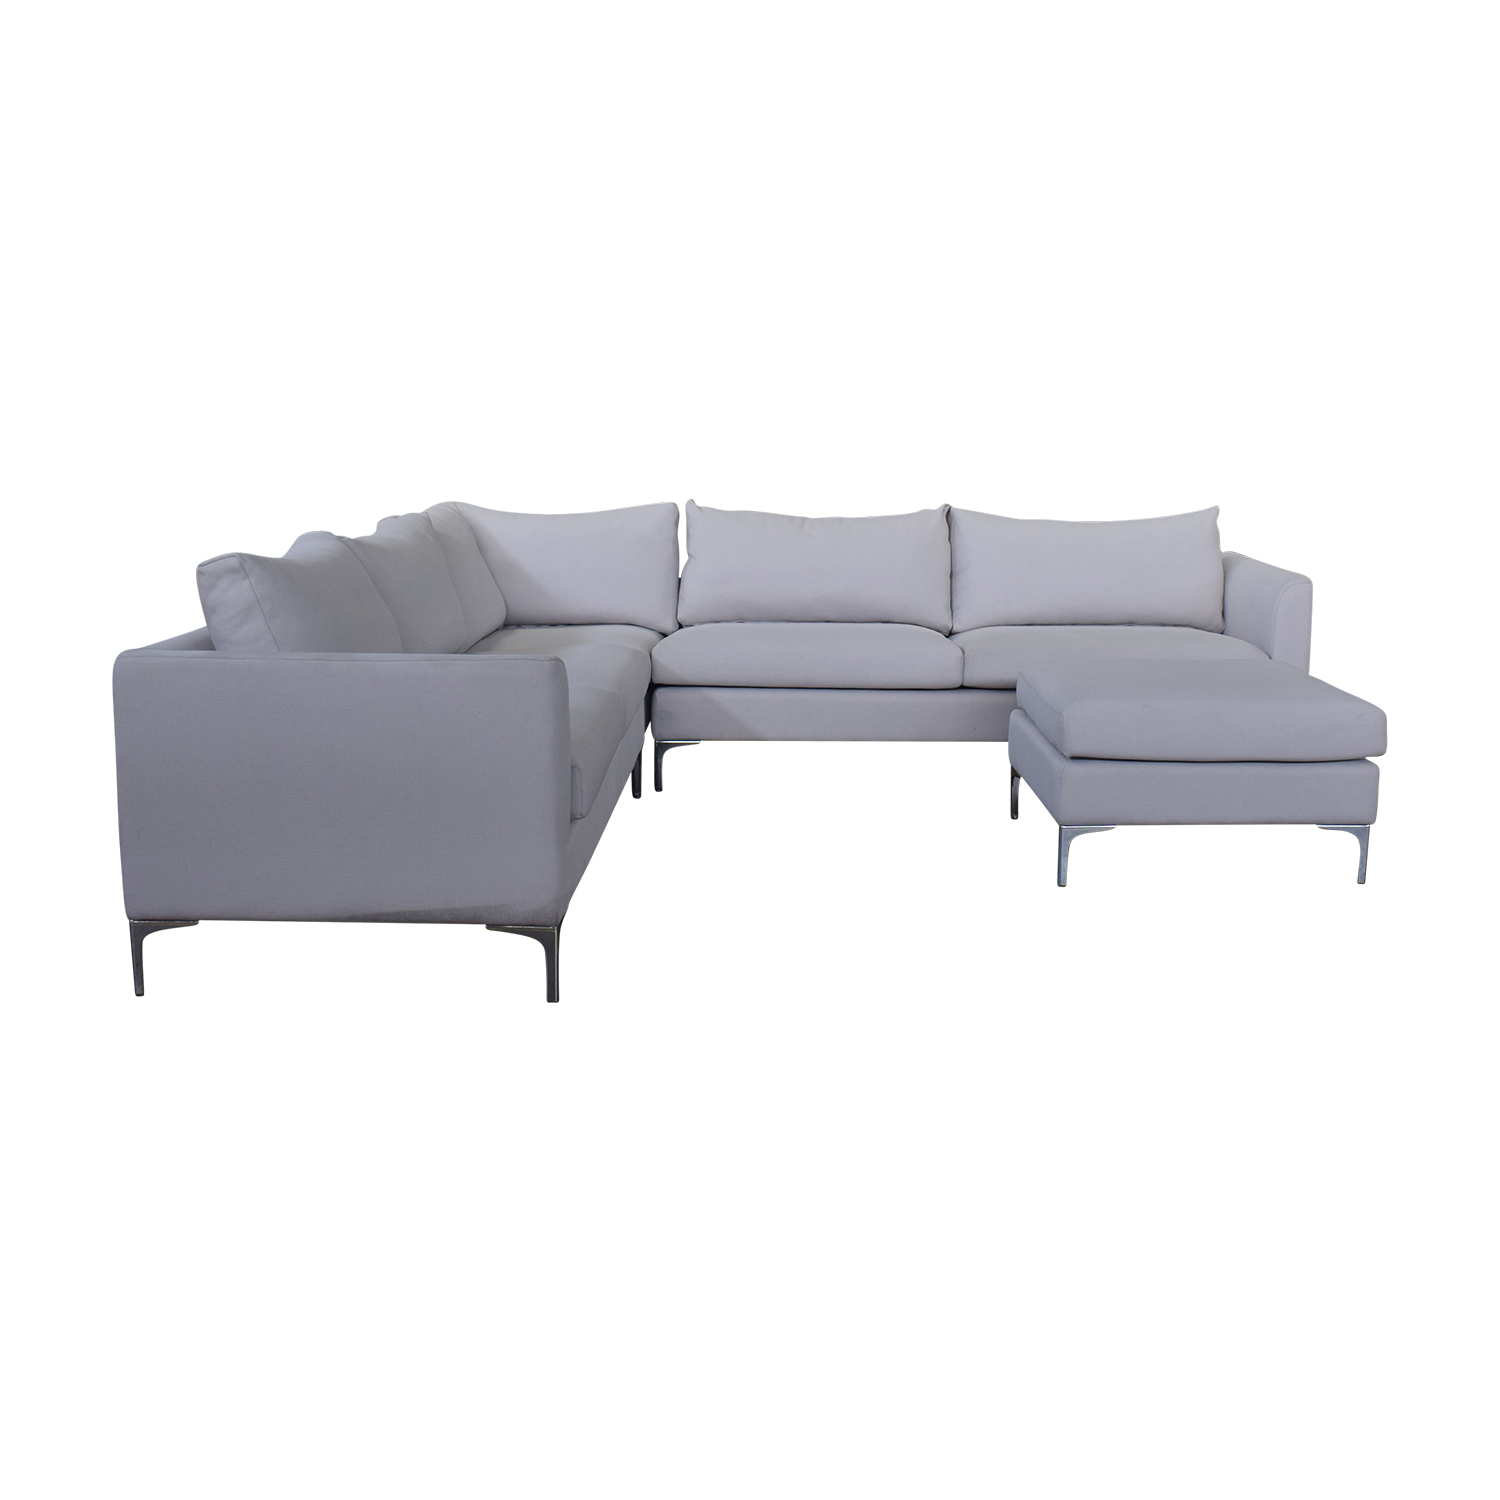 Sofa L Images 64 Off Owens Grey L Shaped Sectional With Ottoman Sofas